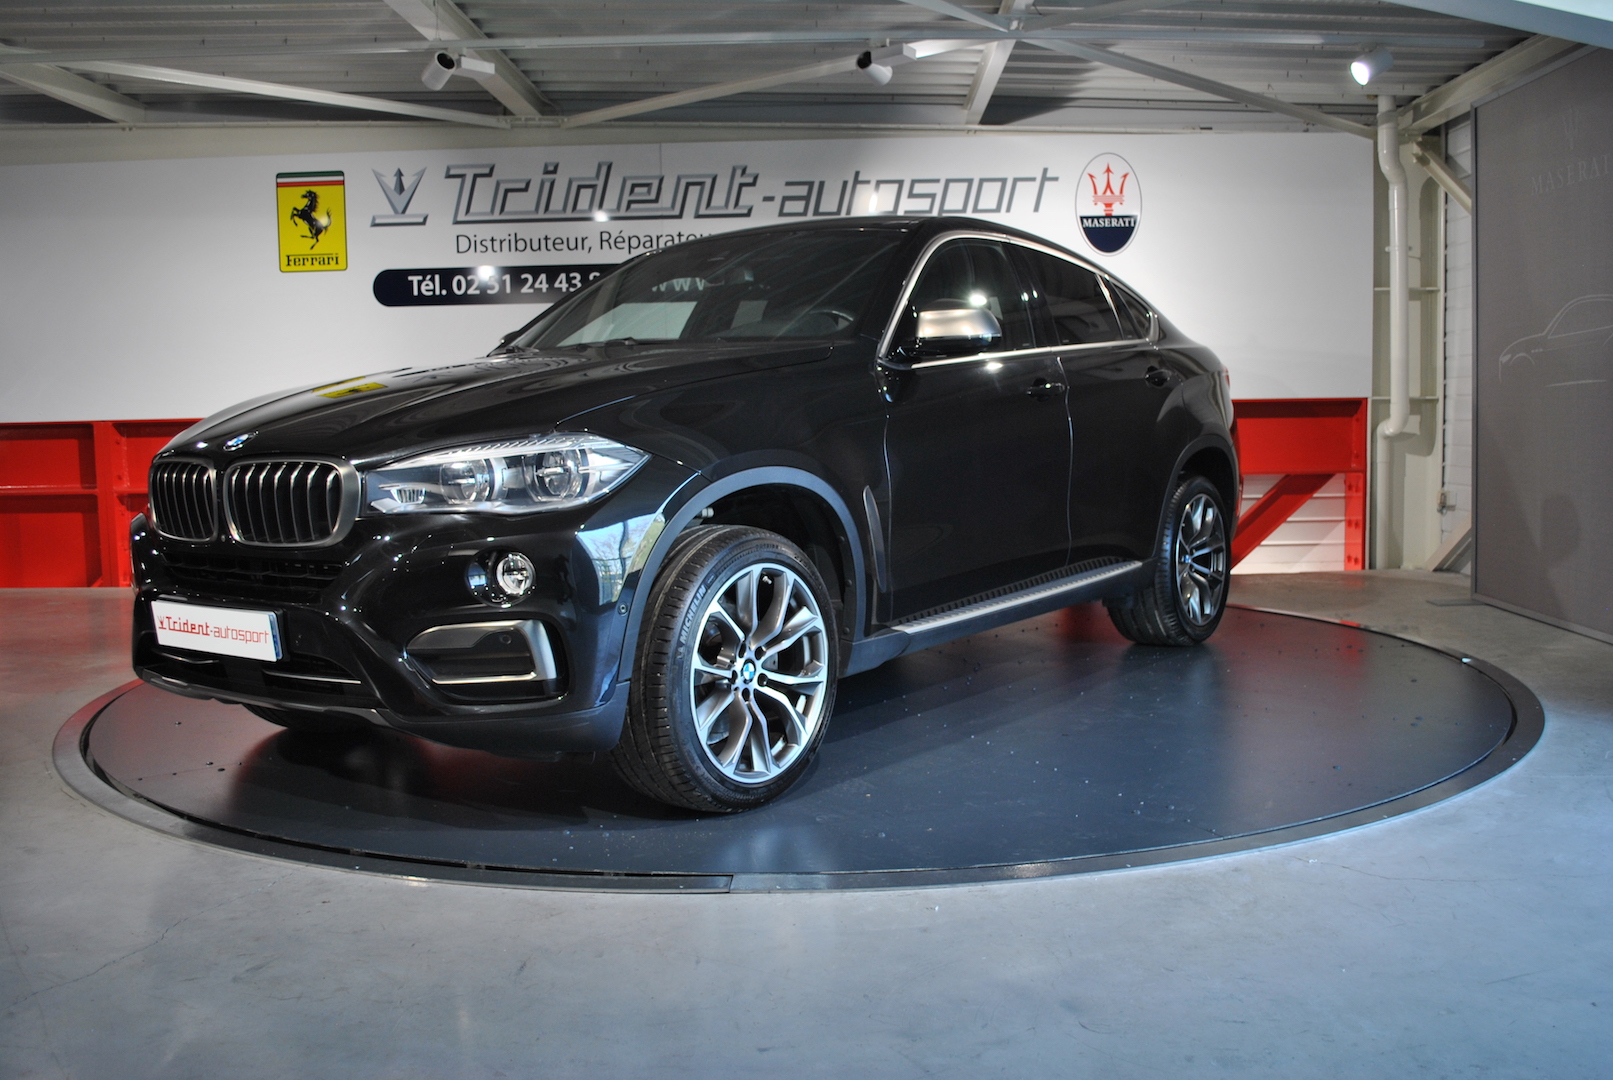 2016 bmw x6 xdrive30d 258 exclusive bva8 d 39 occasion groupe trident. Black Bedroom Furniture Sets. Home Design Ideas